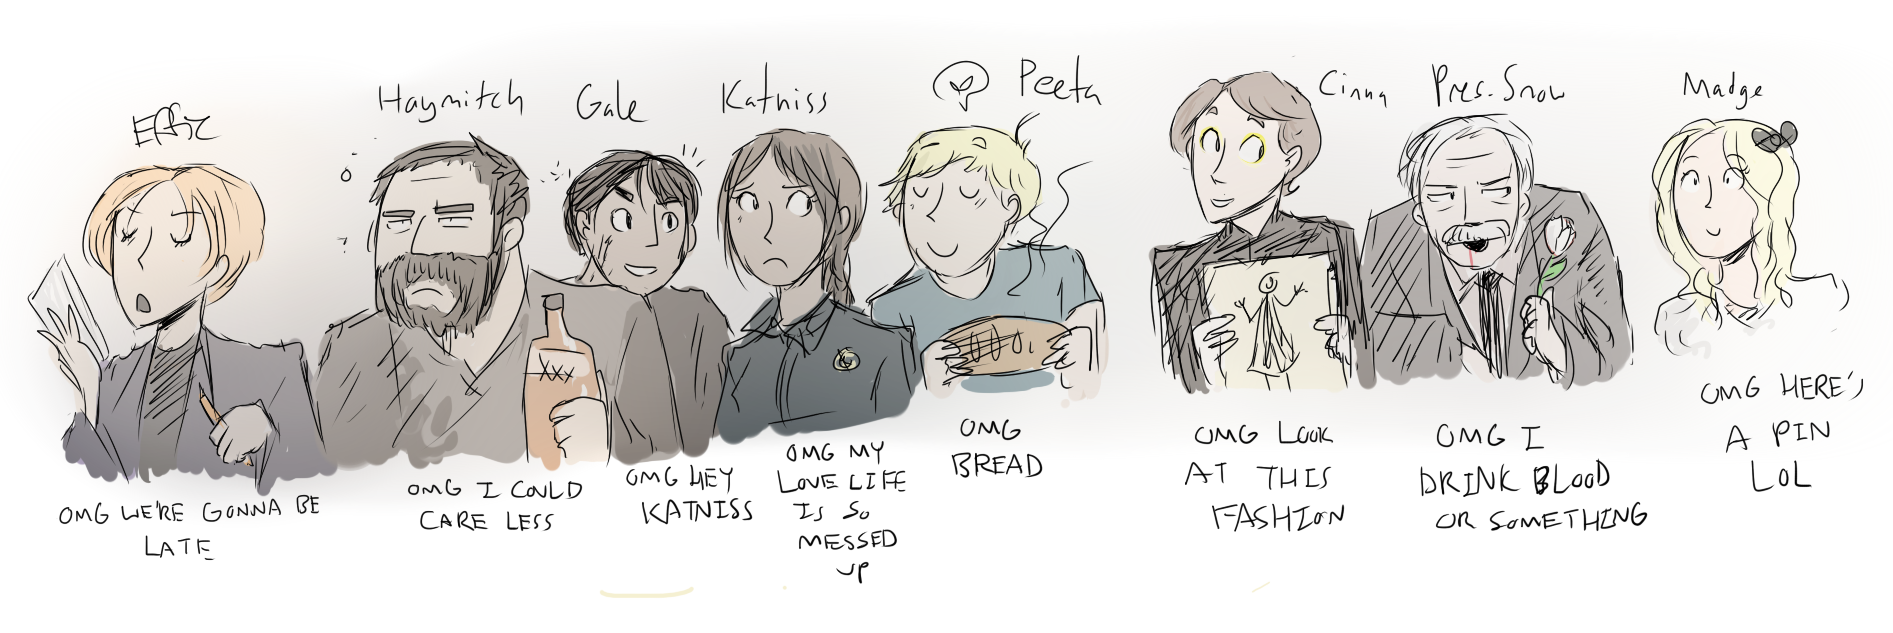 hunger games trilogy characters